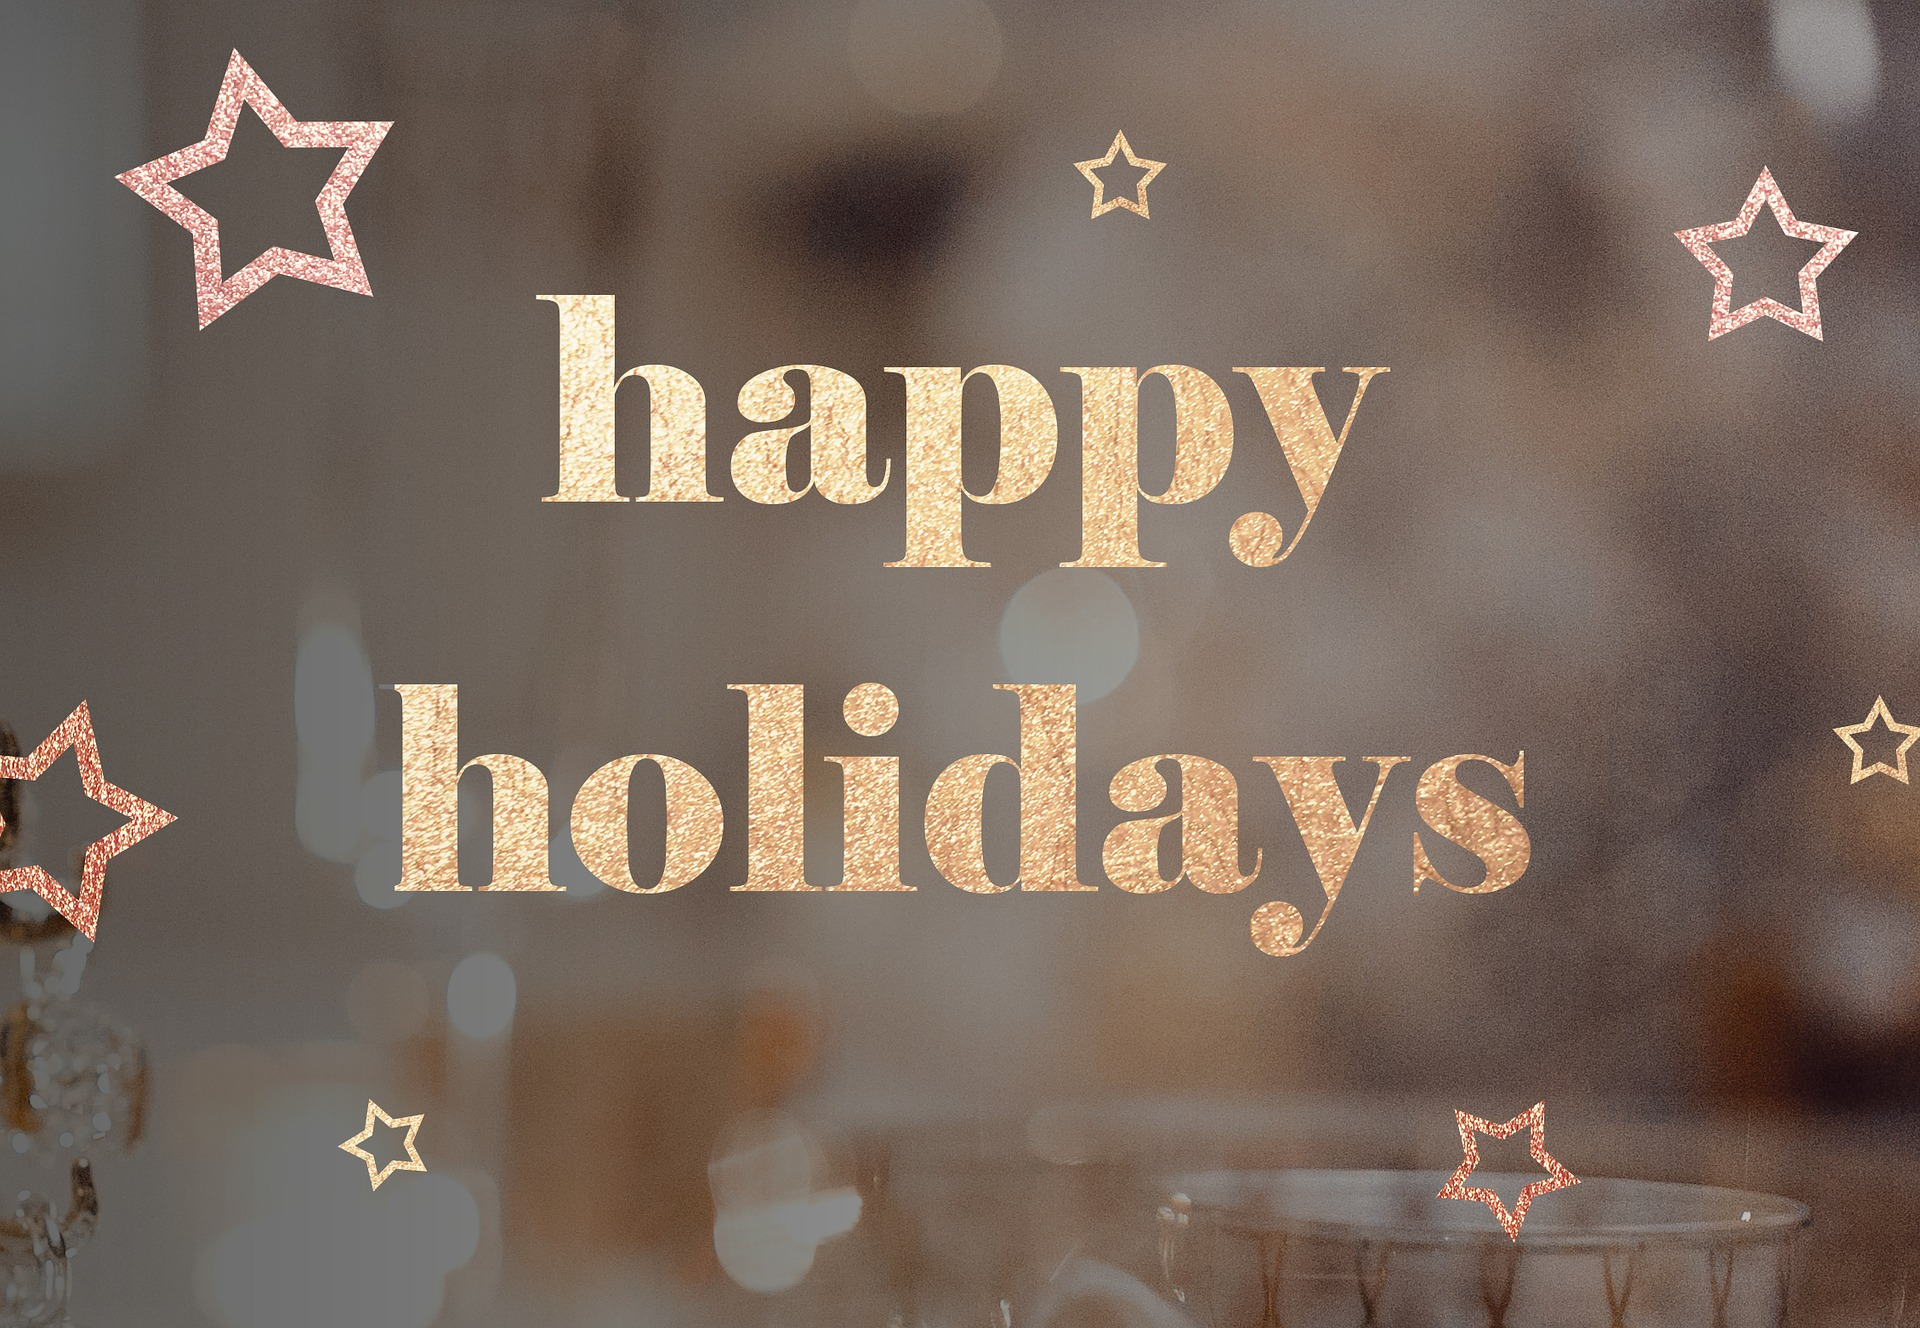 Celebrating the Holidays at the Office: 3 Tips to Make the Celebration Fun and Inclusive